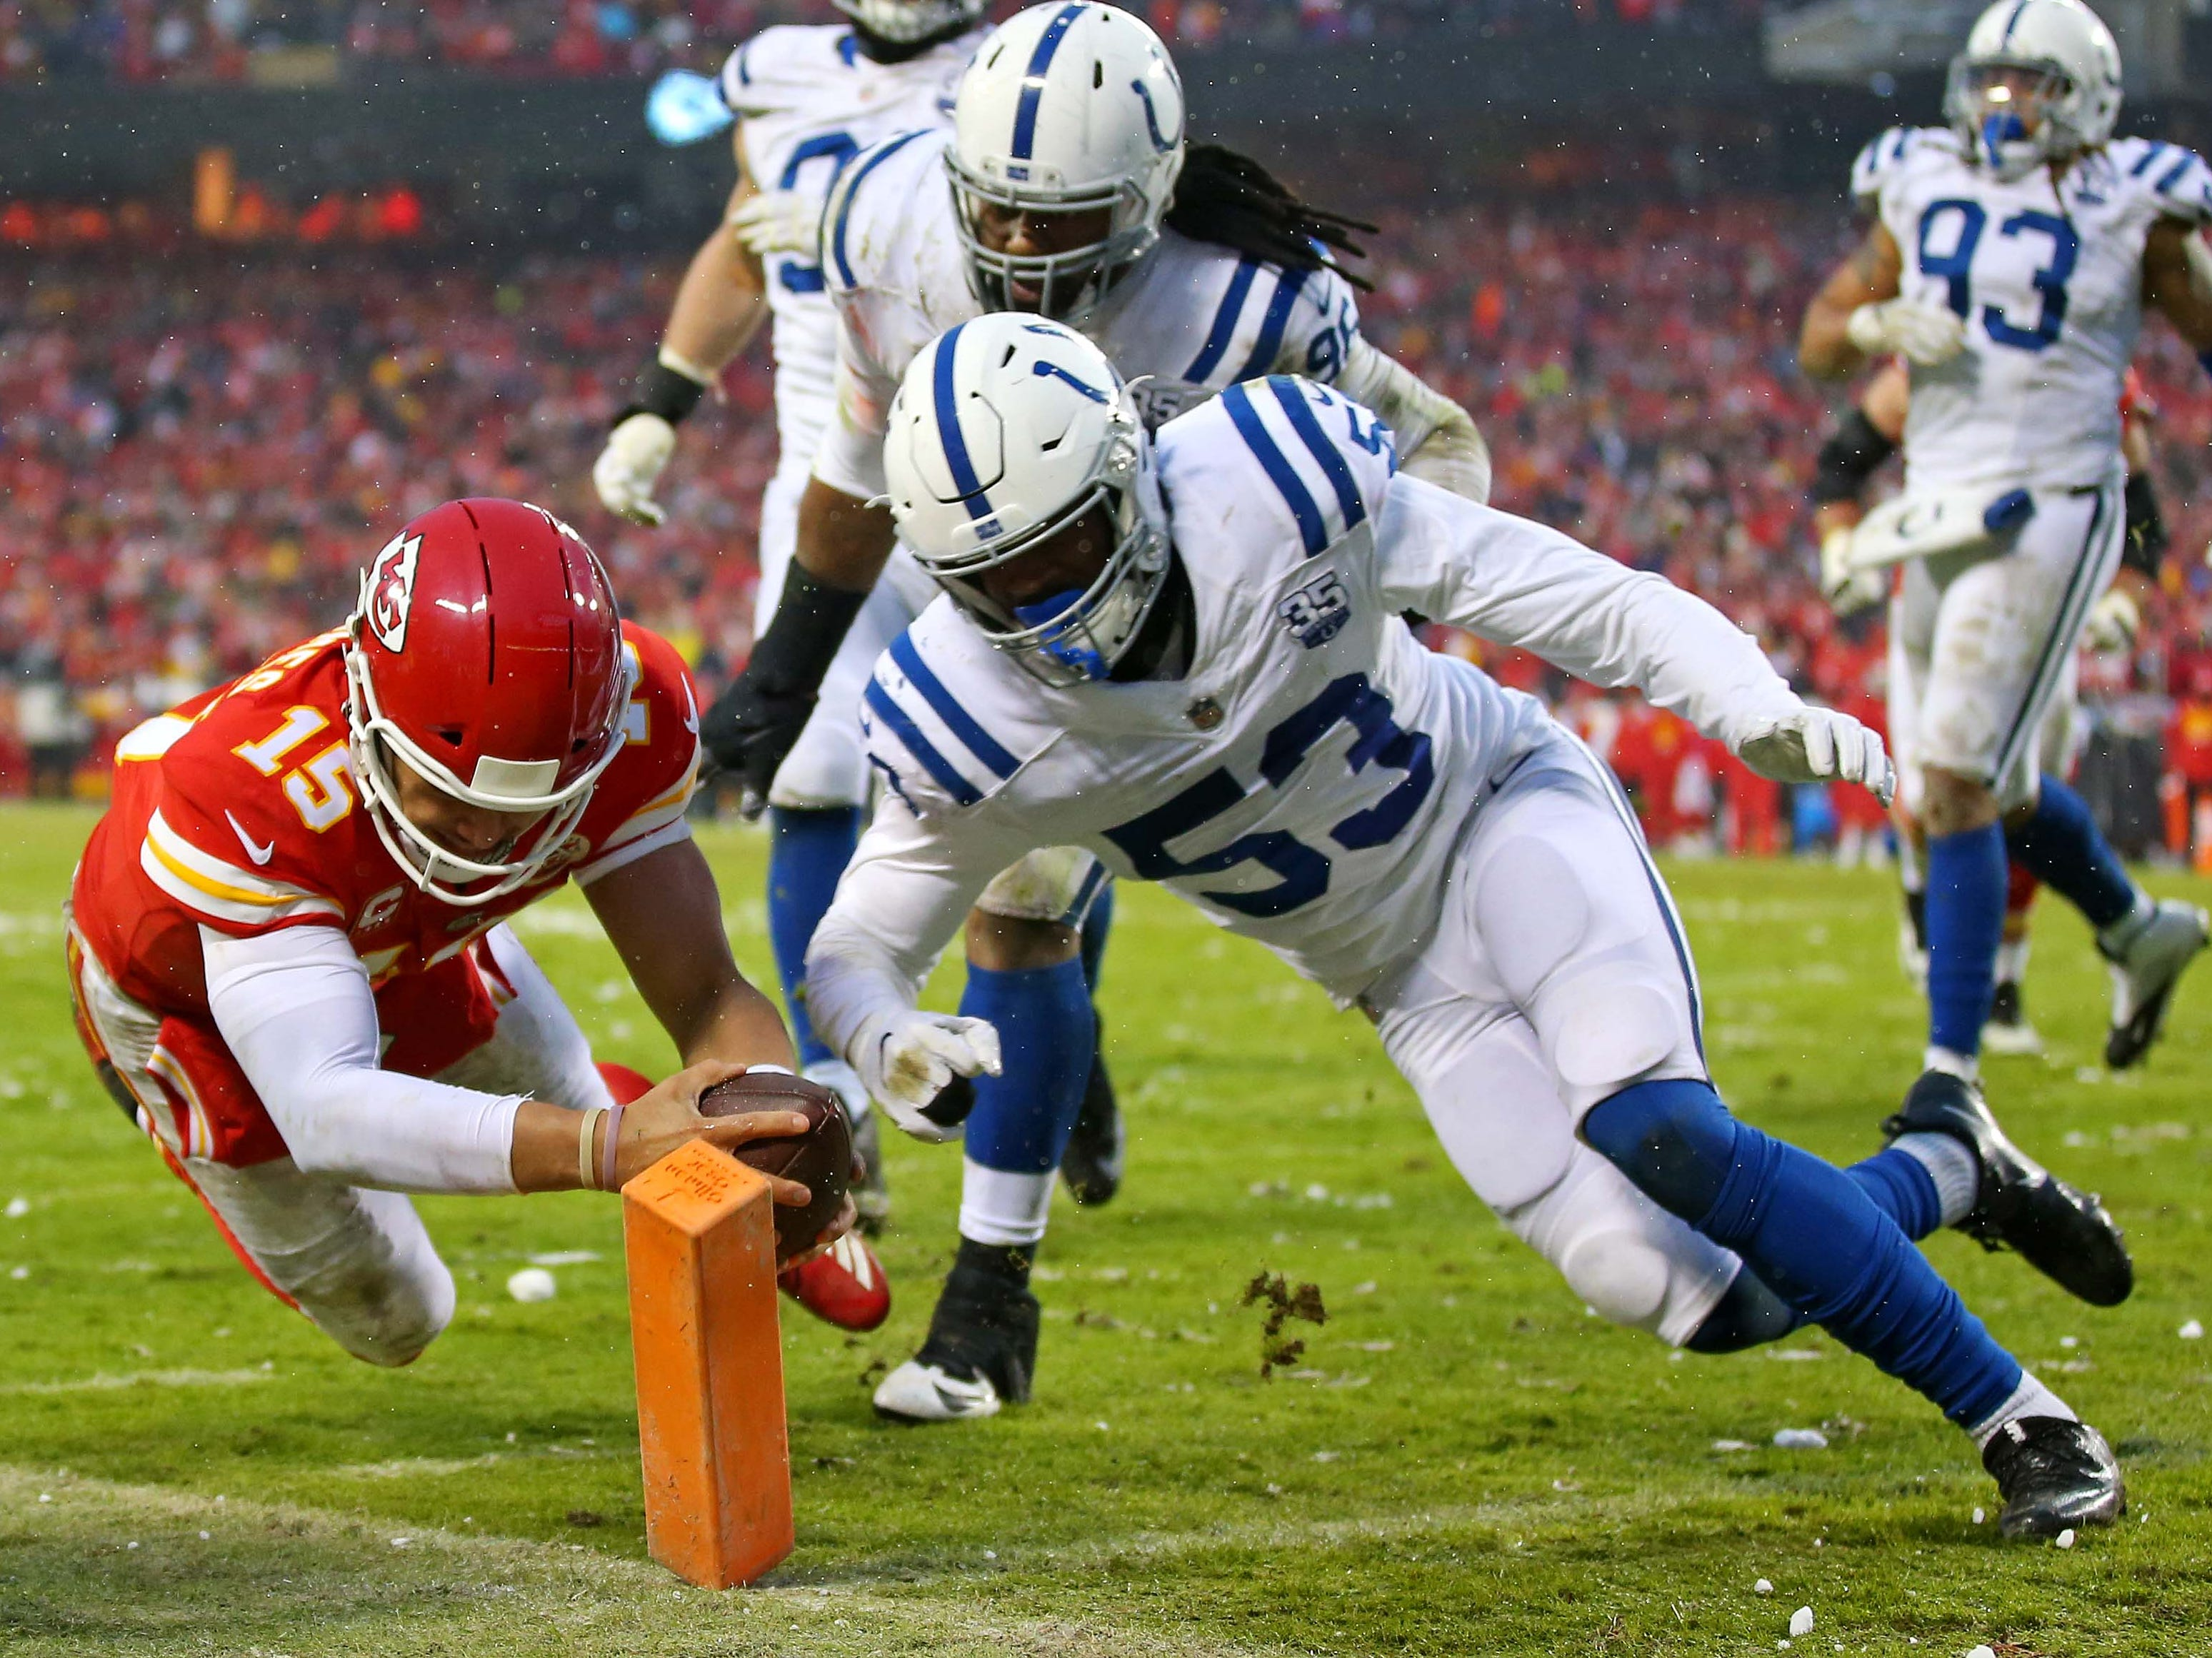 Divisional playoffs: Kansas City Chiefs quarterback Patrick Mahomes scores a touchdown against the Indianapolis Colts during the second quarter in the AFC divisional playoffs at Arrowhead Stadium. The Chiefs won the game, 31-13.